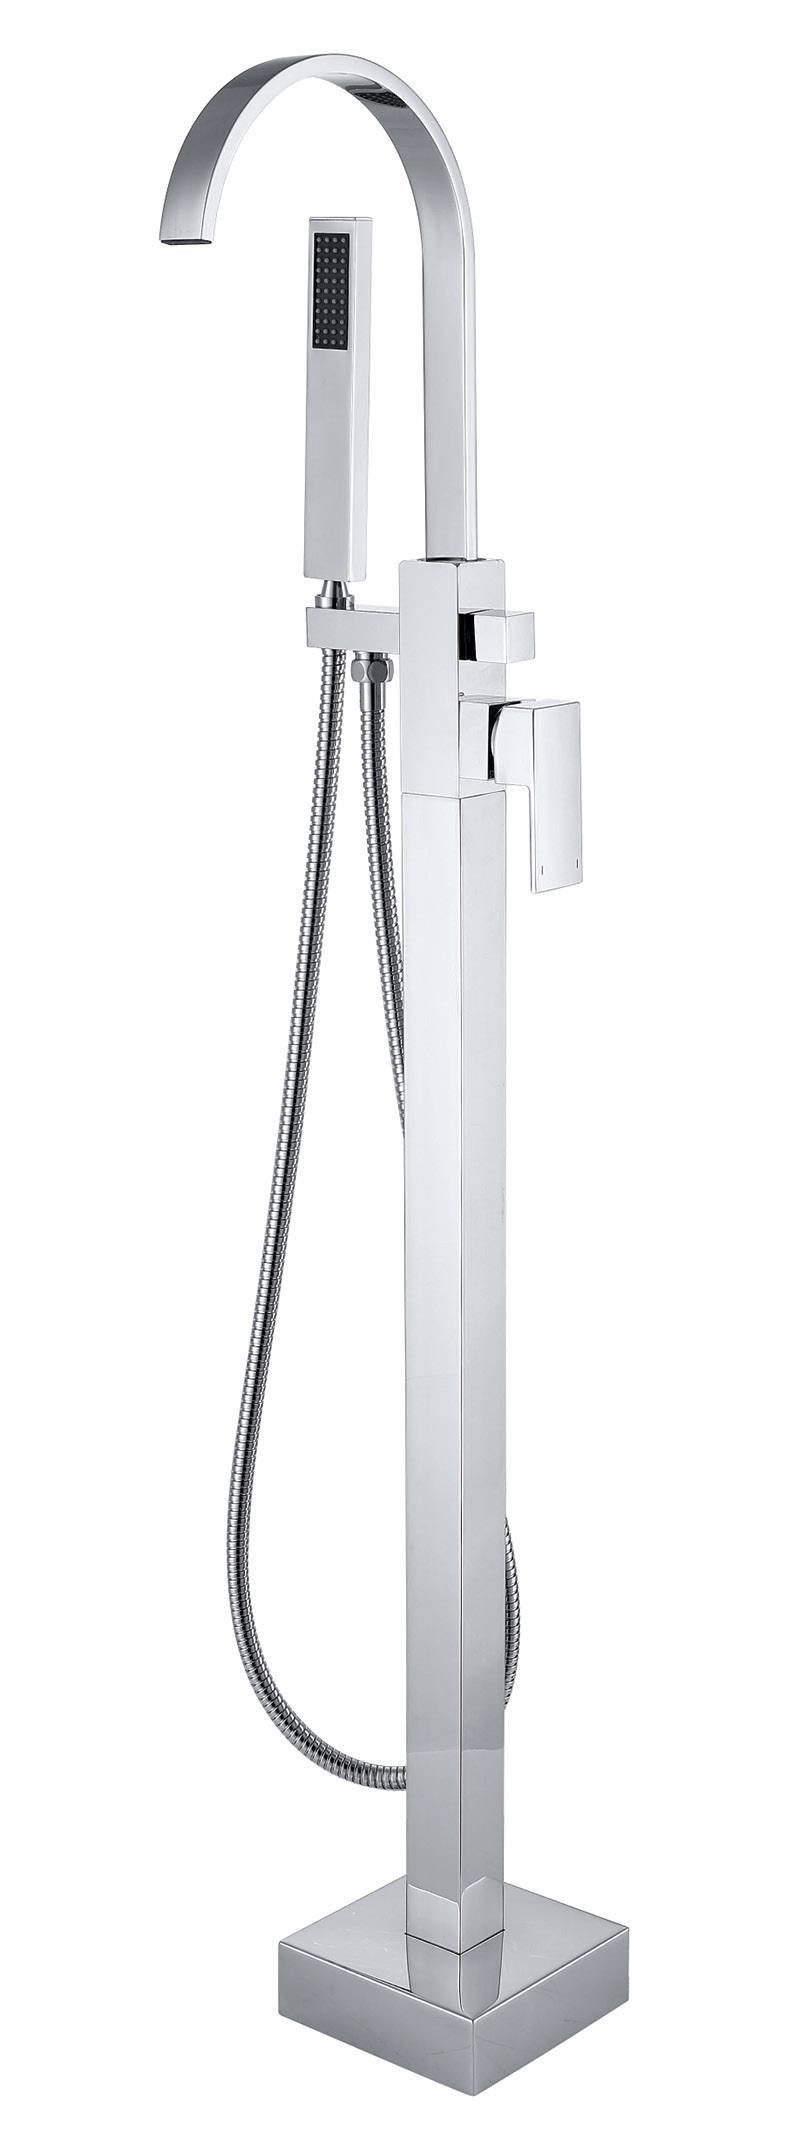 Floor standing Bathtub Faucet - Chrome Finished